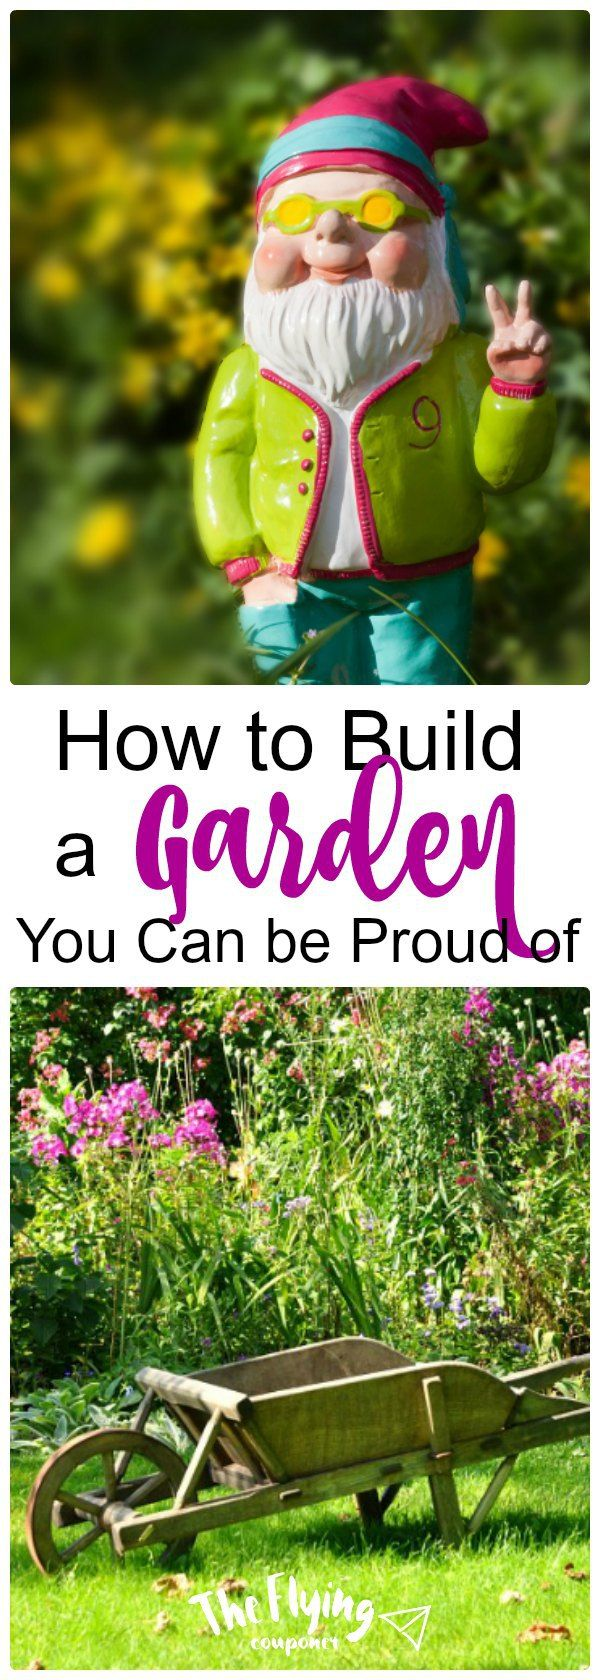 How to Build a Garden You Can be Proud of. Spring and